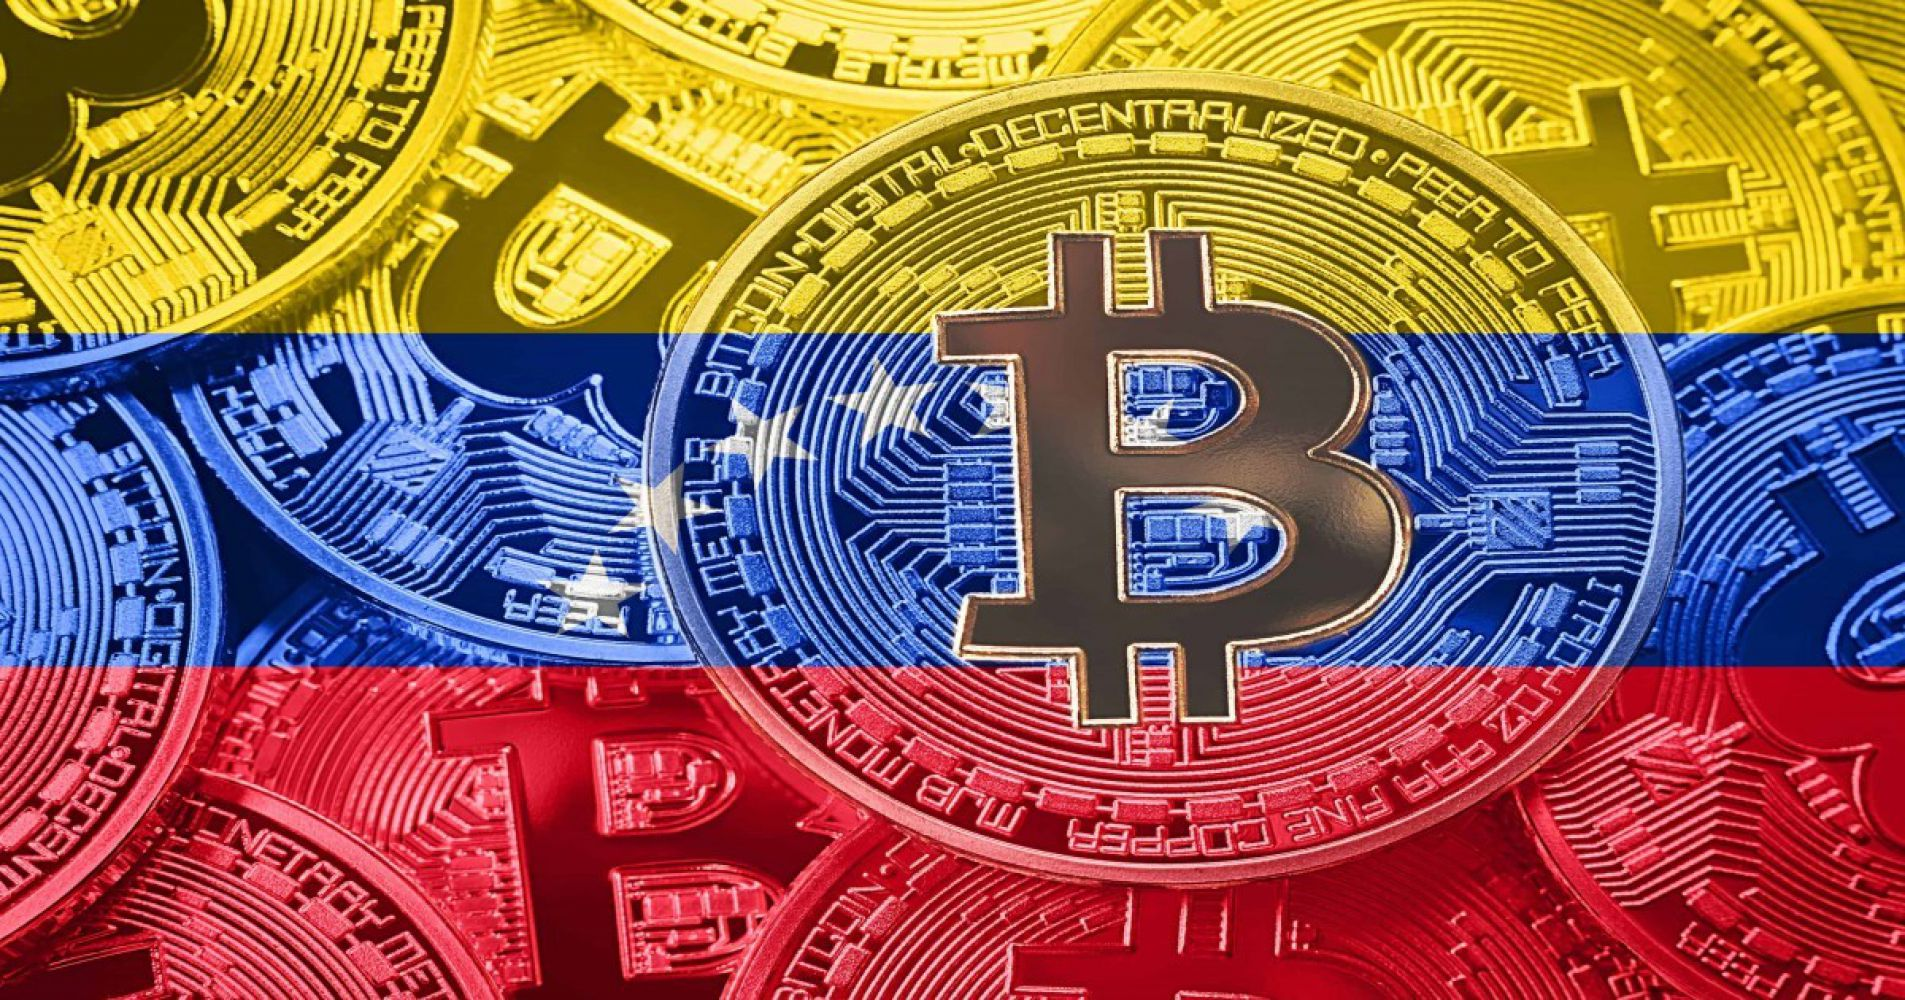 Venezuela is escaping towards Bitcoin